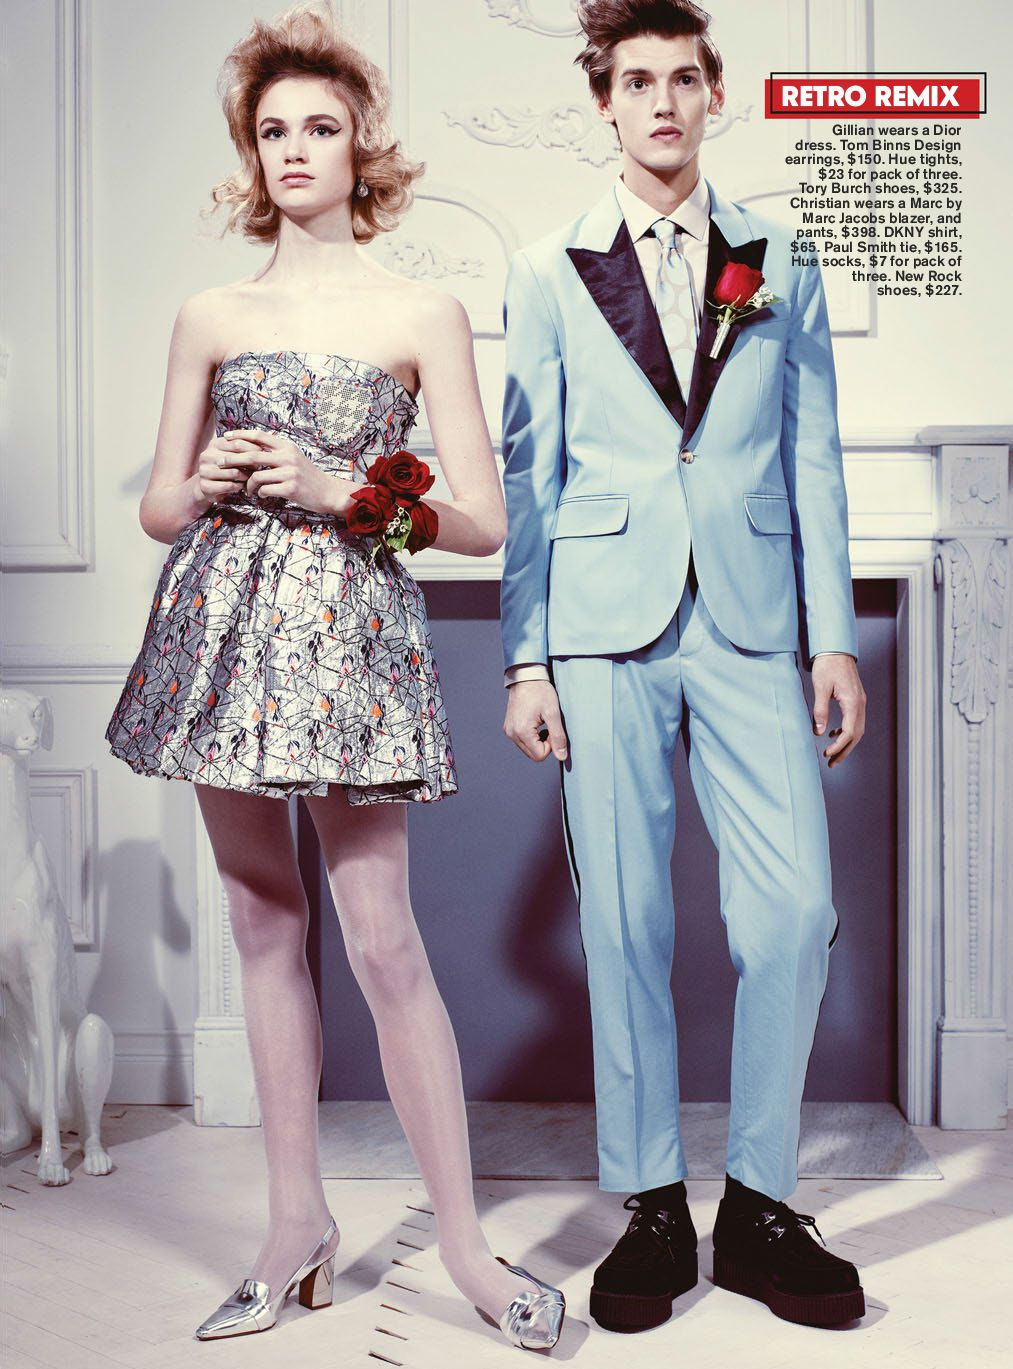 Teen vogue showing Dior for prom | Prom editorial | Pinterest ...